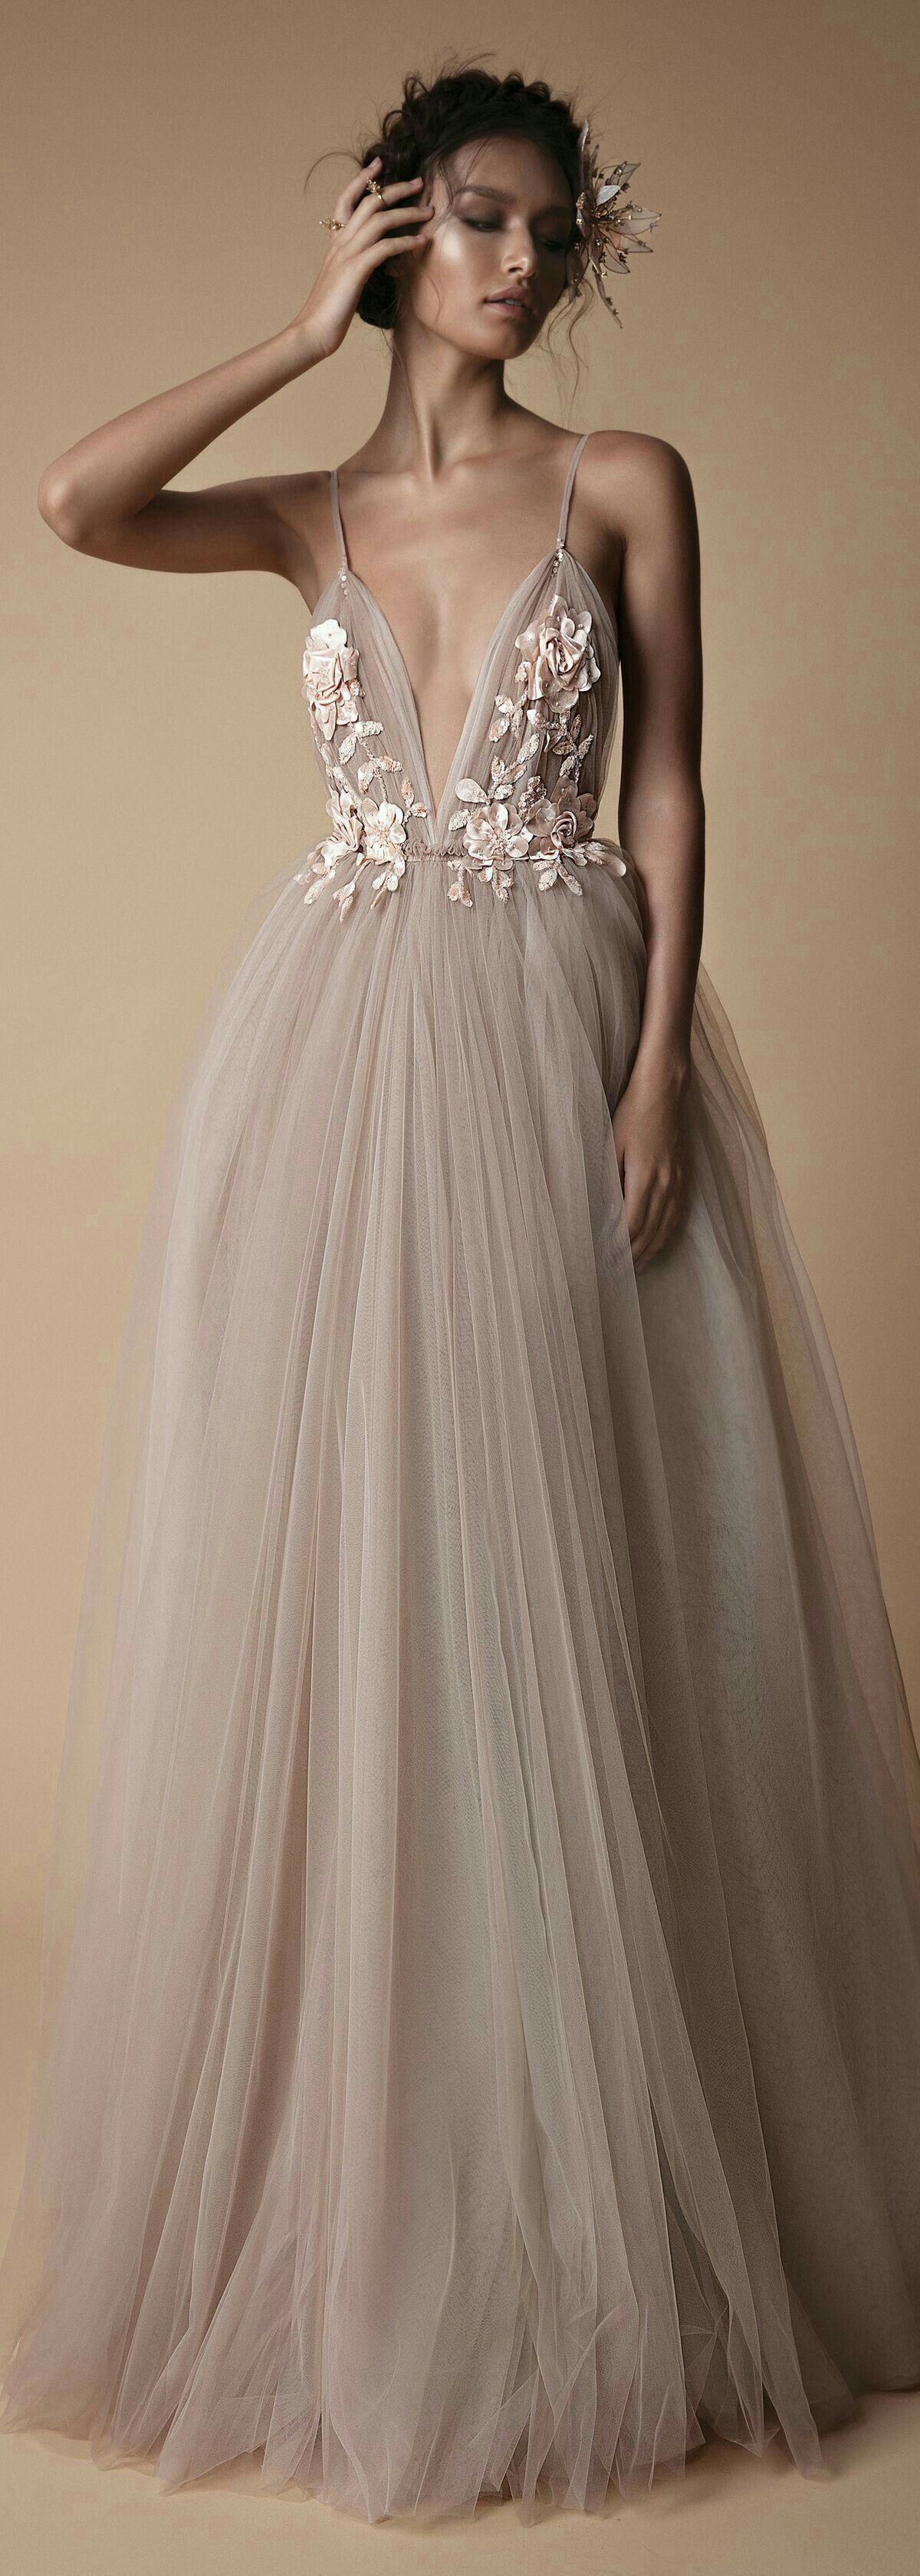 Pin by SPARKED WINGS on EXQUISITE GOWNS | Pinterest | Google, Prom ...